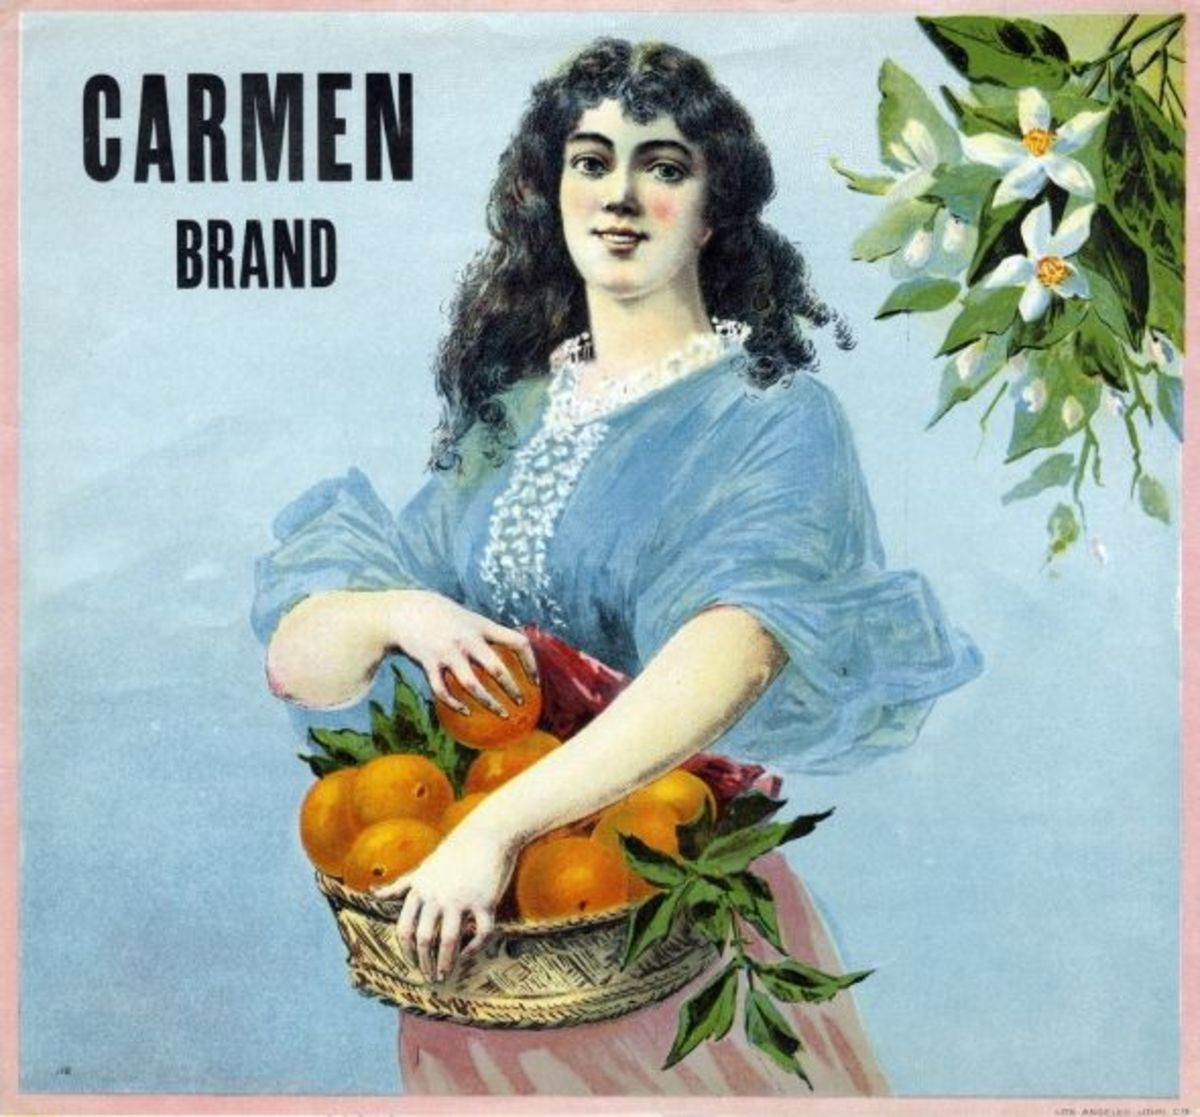 An orange crate label, believed public domain, for more info click